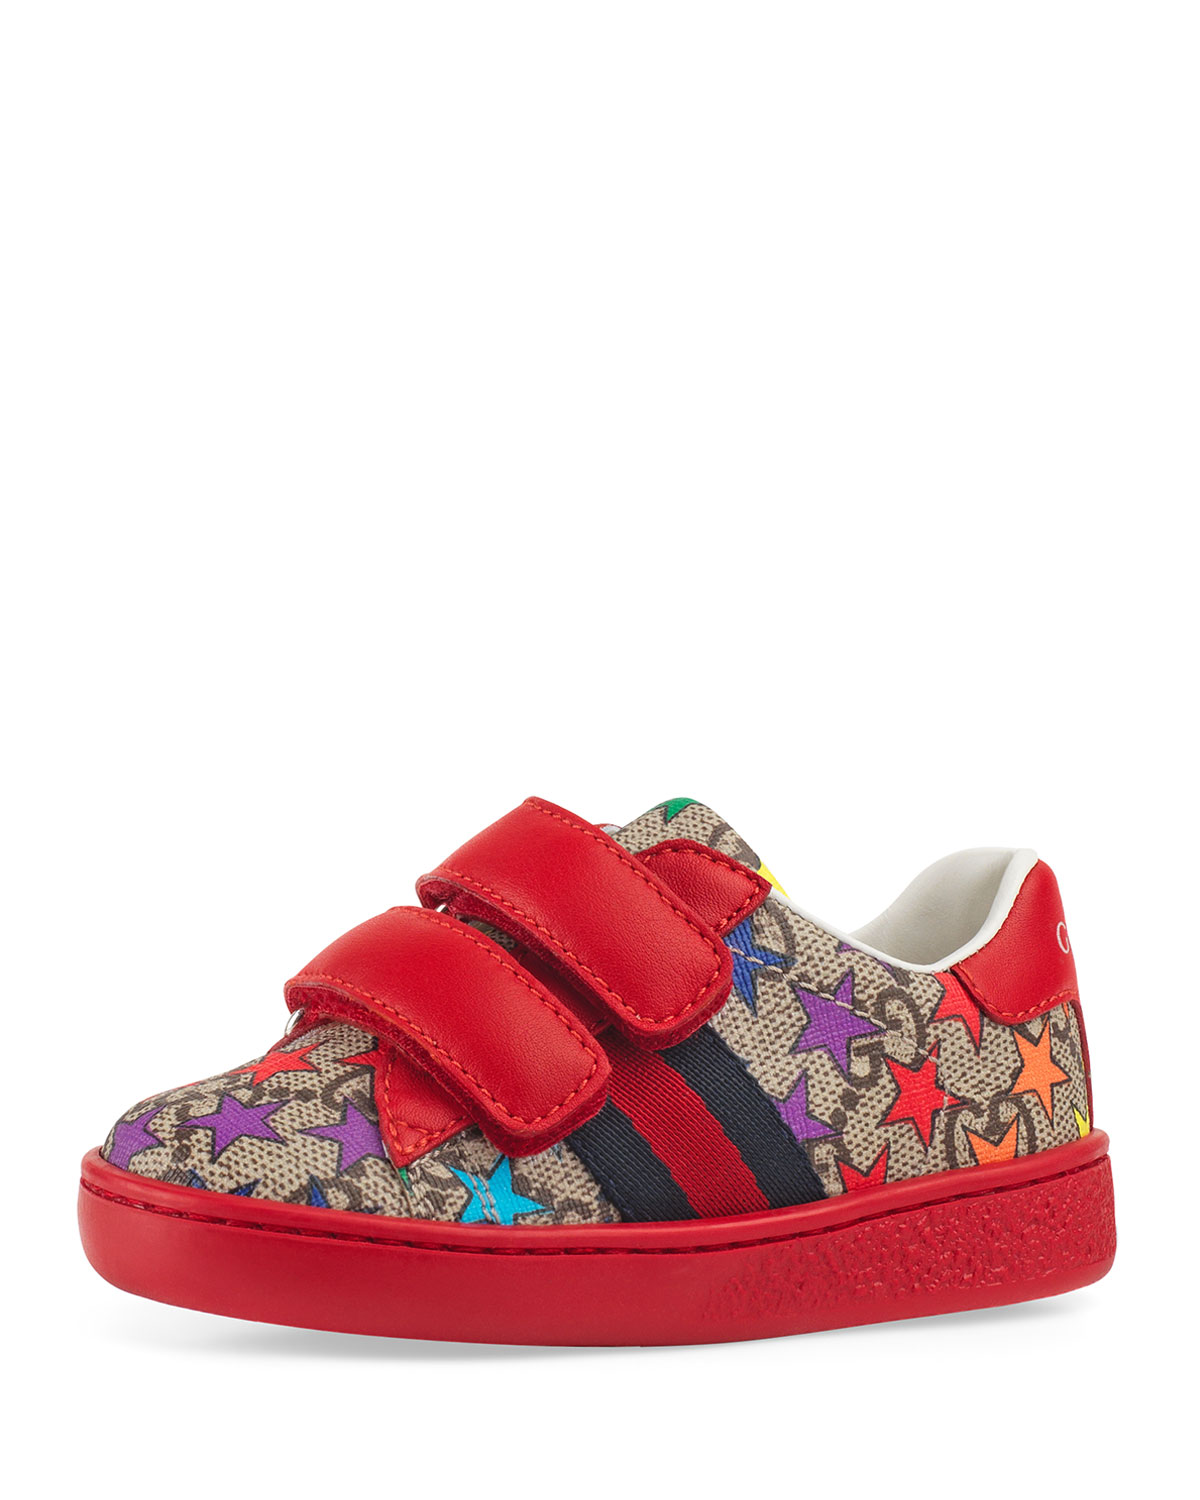 b7168b223 Gucci New Ace GG Supreme Rainbow Star-Print Sneakers, Toddler ...